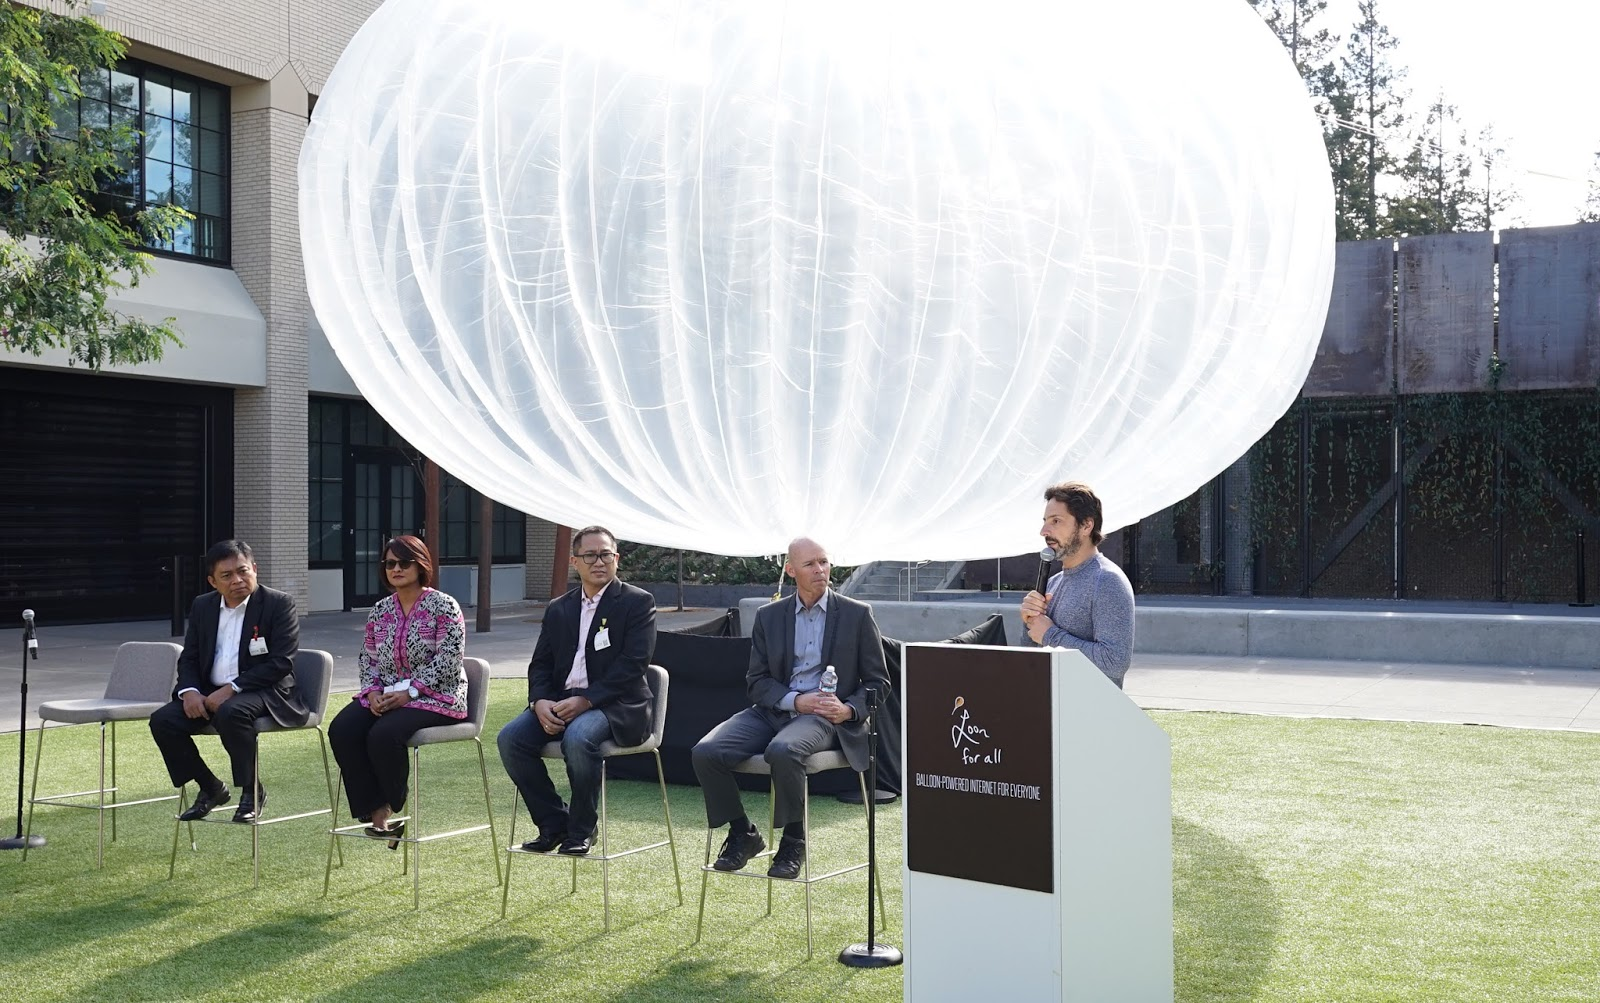 Alphabet Plans Global Network of Internet Balloons by 2016